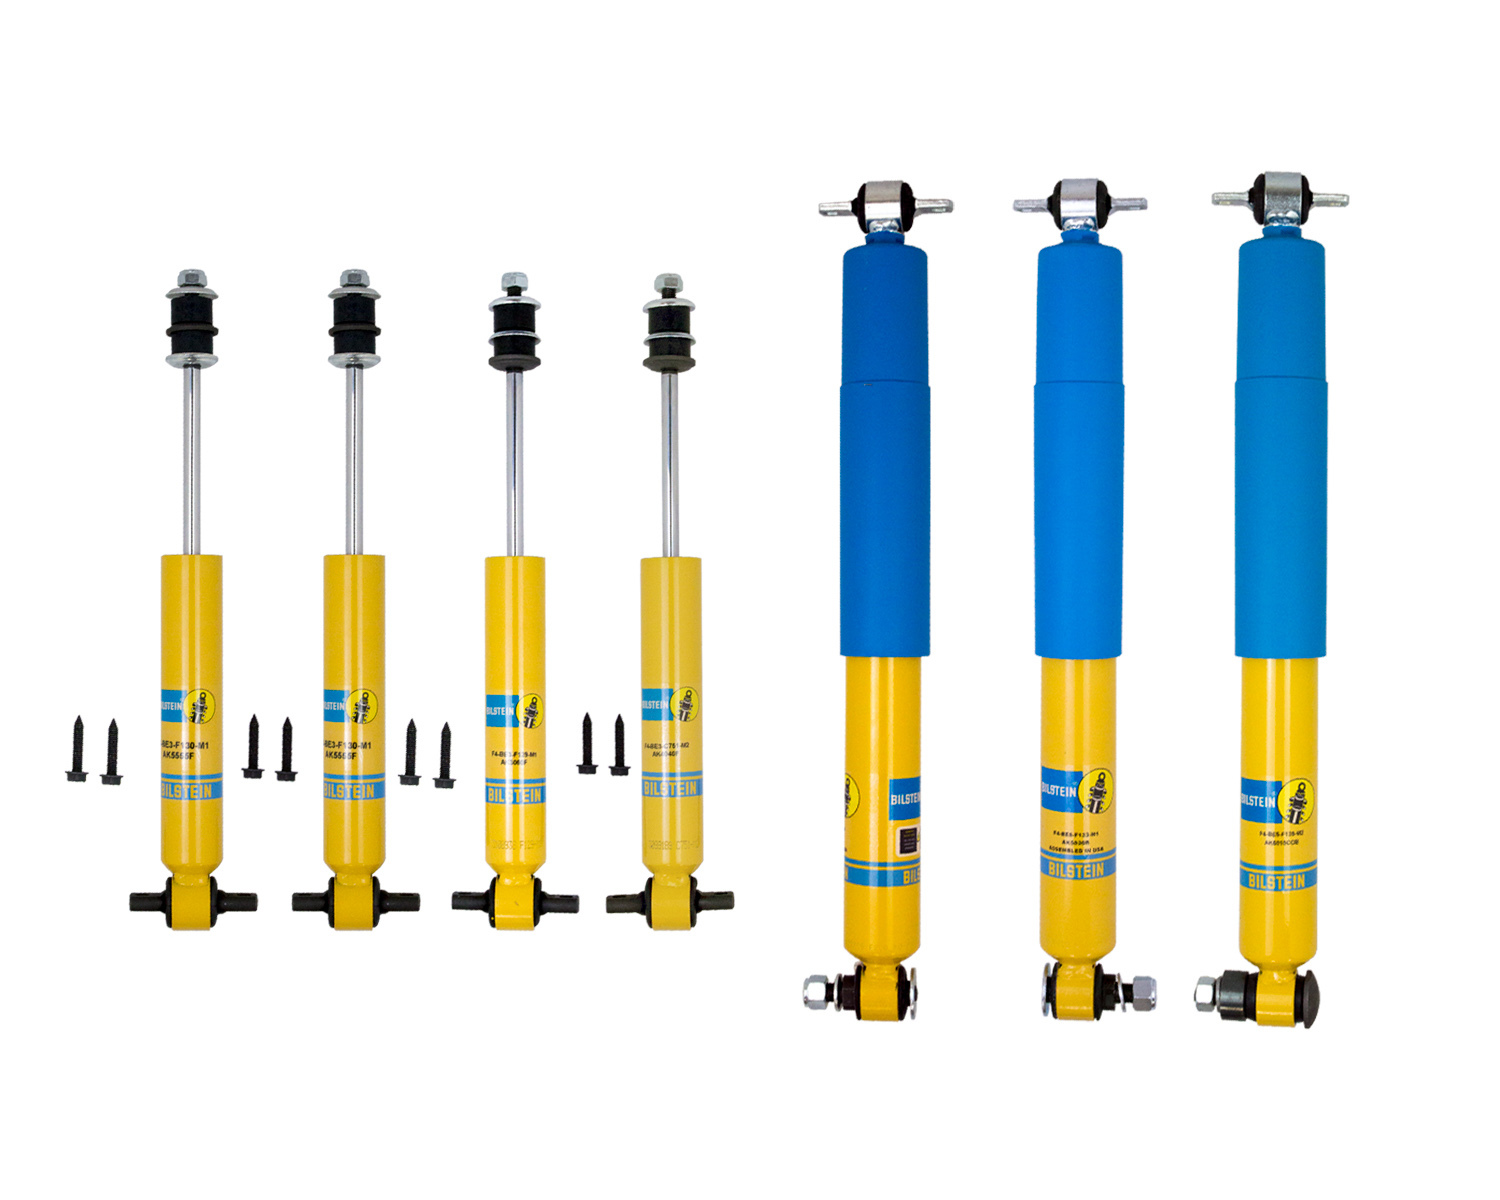 Bilstein F4-SE7-F565-M0 Shock, AK Series, Monotube, Steel, Yellow Paint, GM Metric, Dirt Stock Car, Set of 7